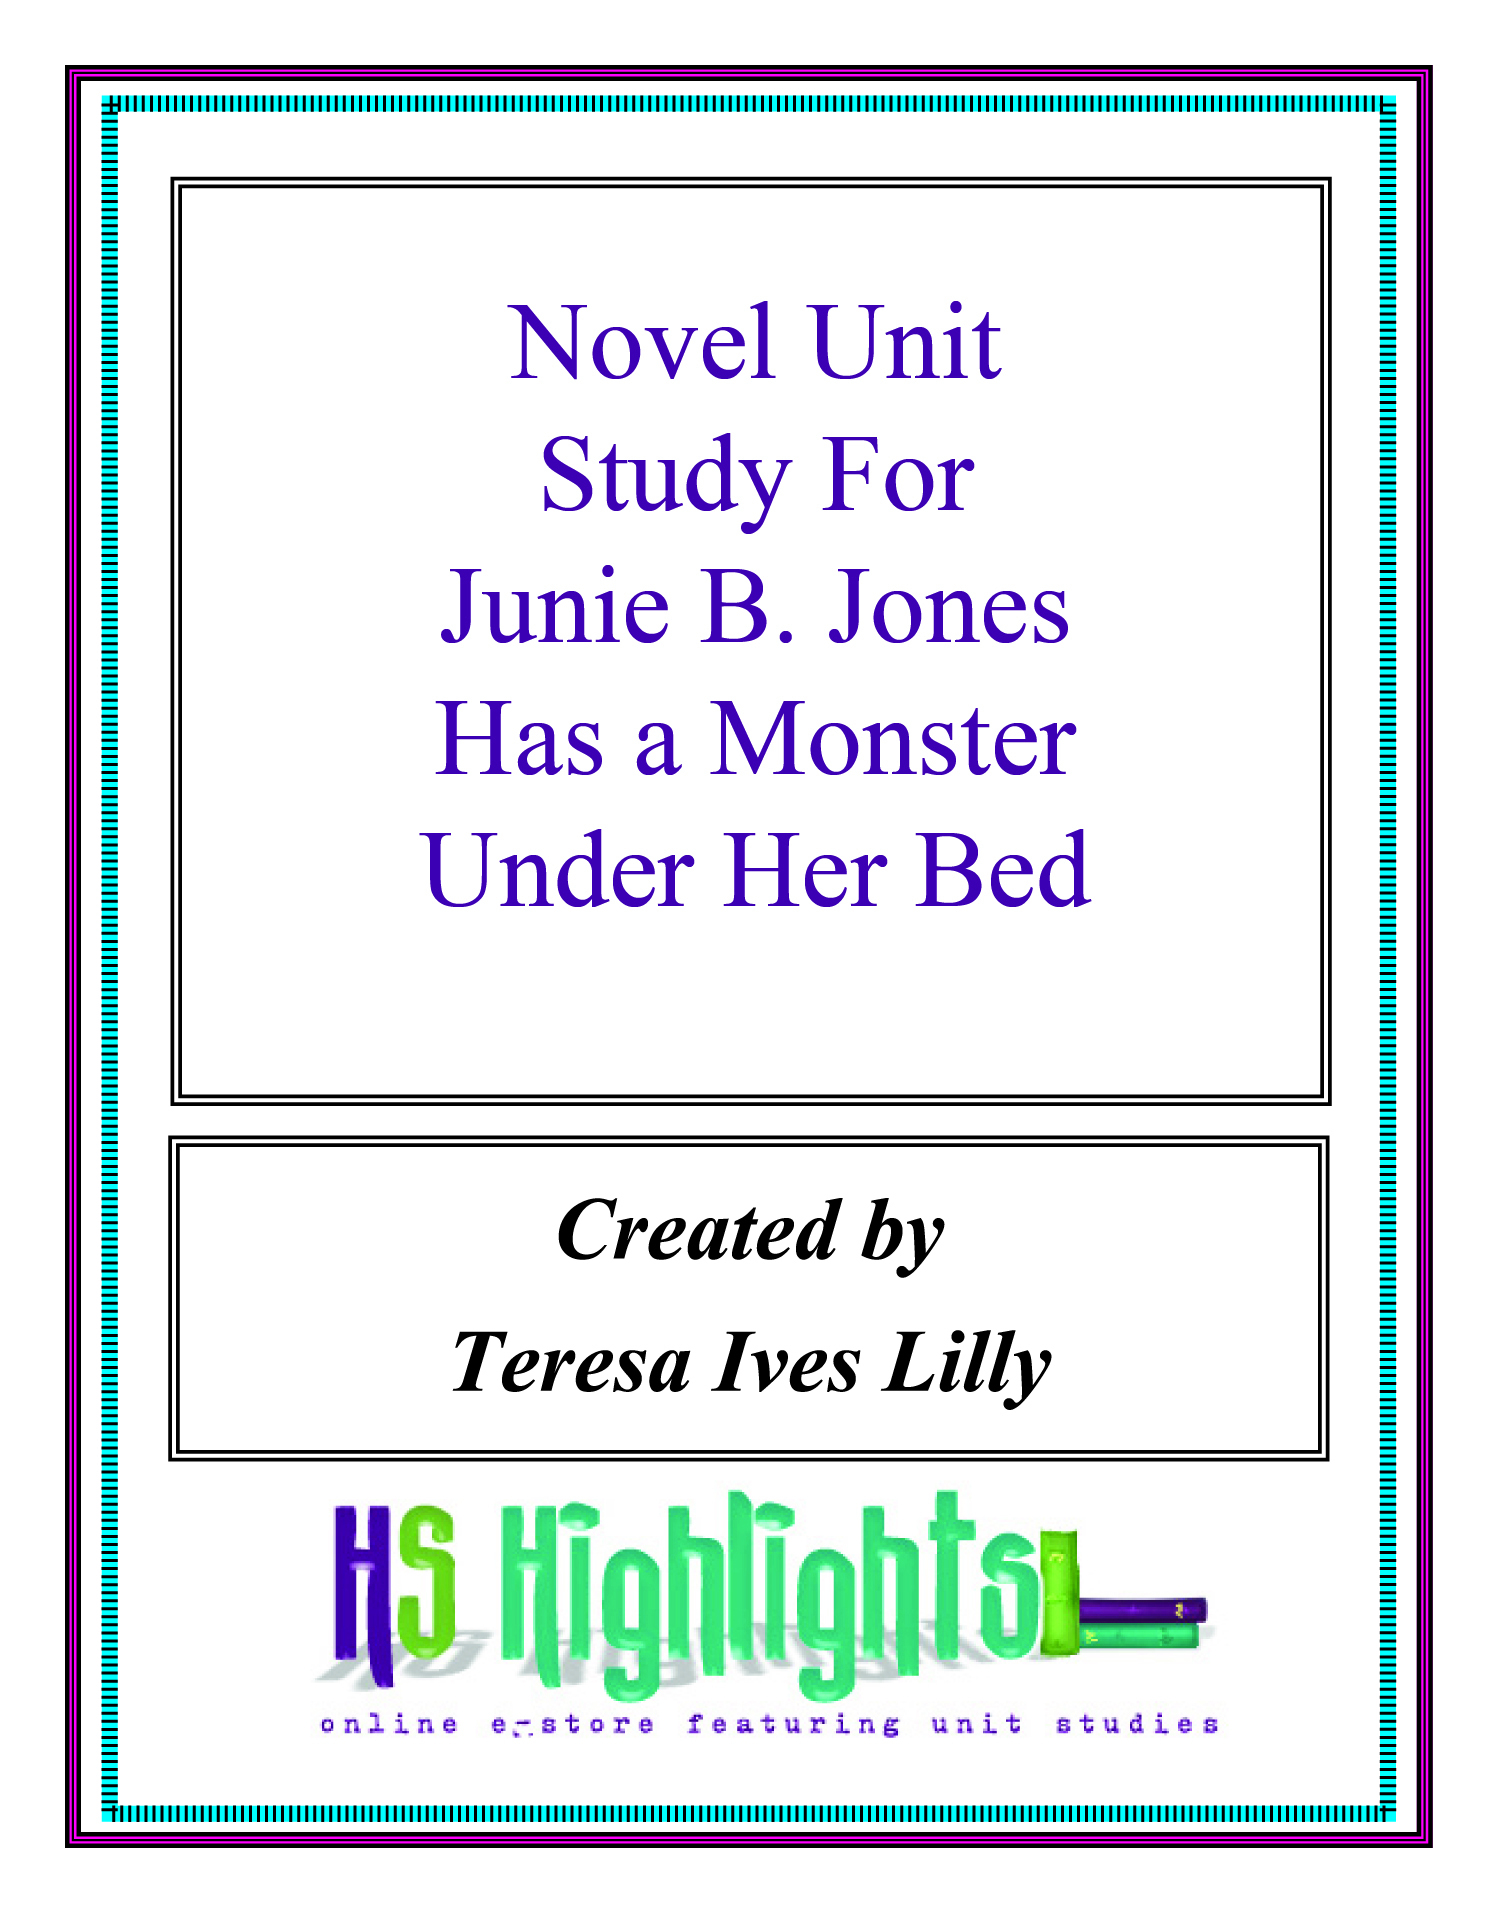 Novel Unit Study For Junie B. Jones Has a Monster Under Her Bed